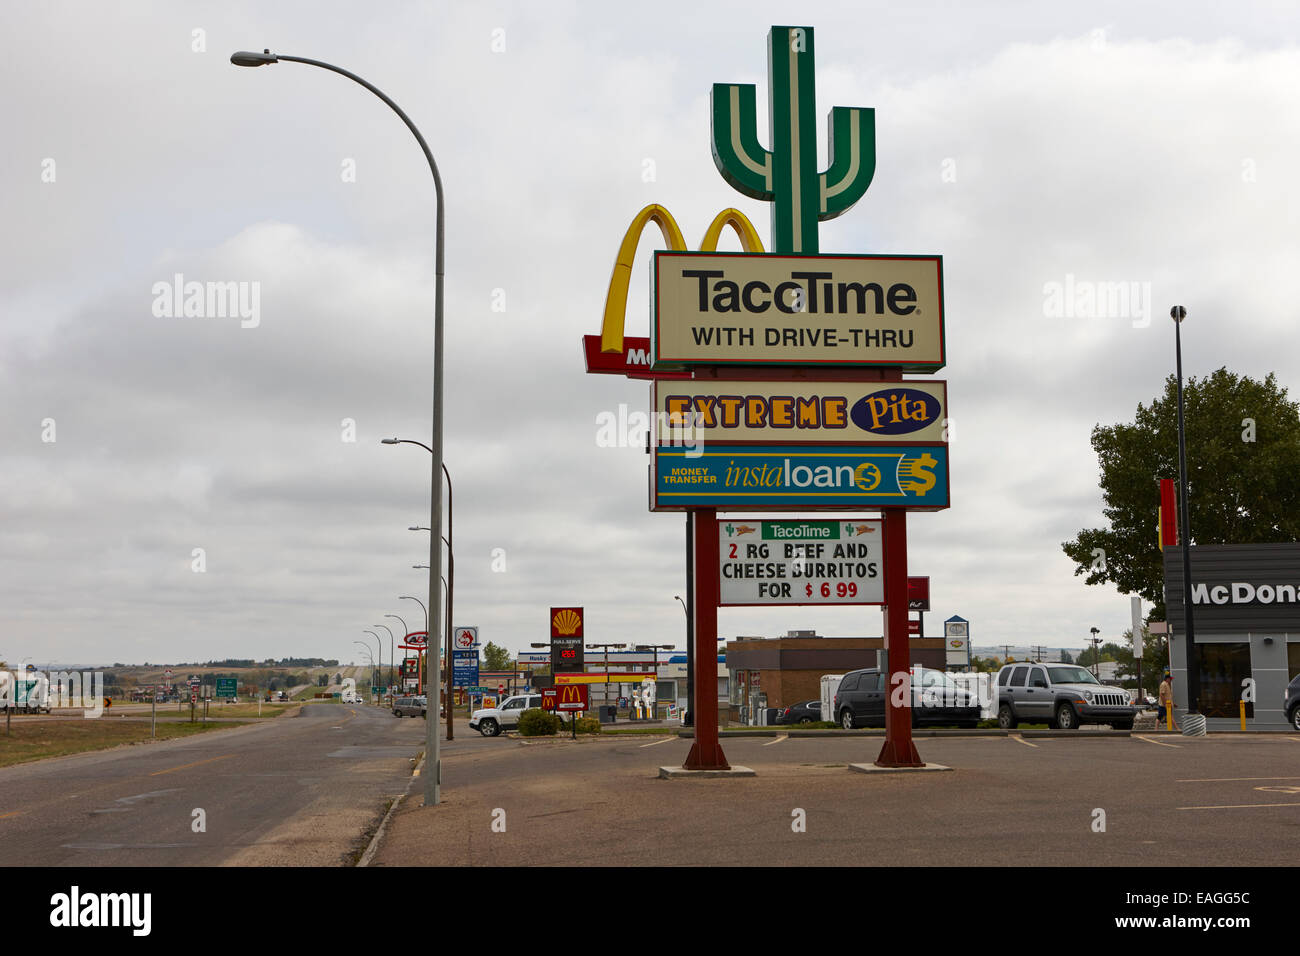 highway access road restaurant and hotel adverts signs swift current Saskatchewan Canada - Stock Image